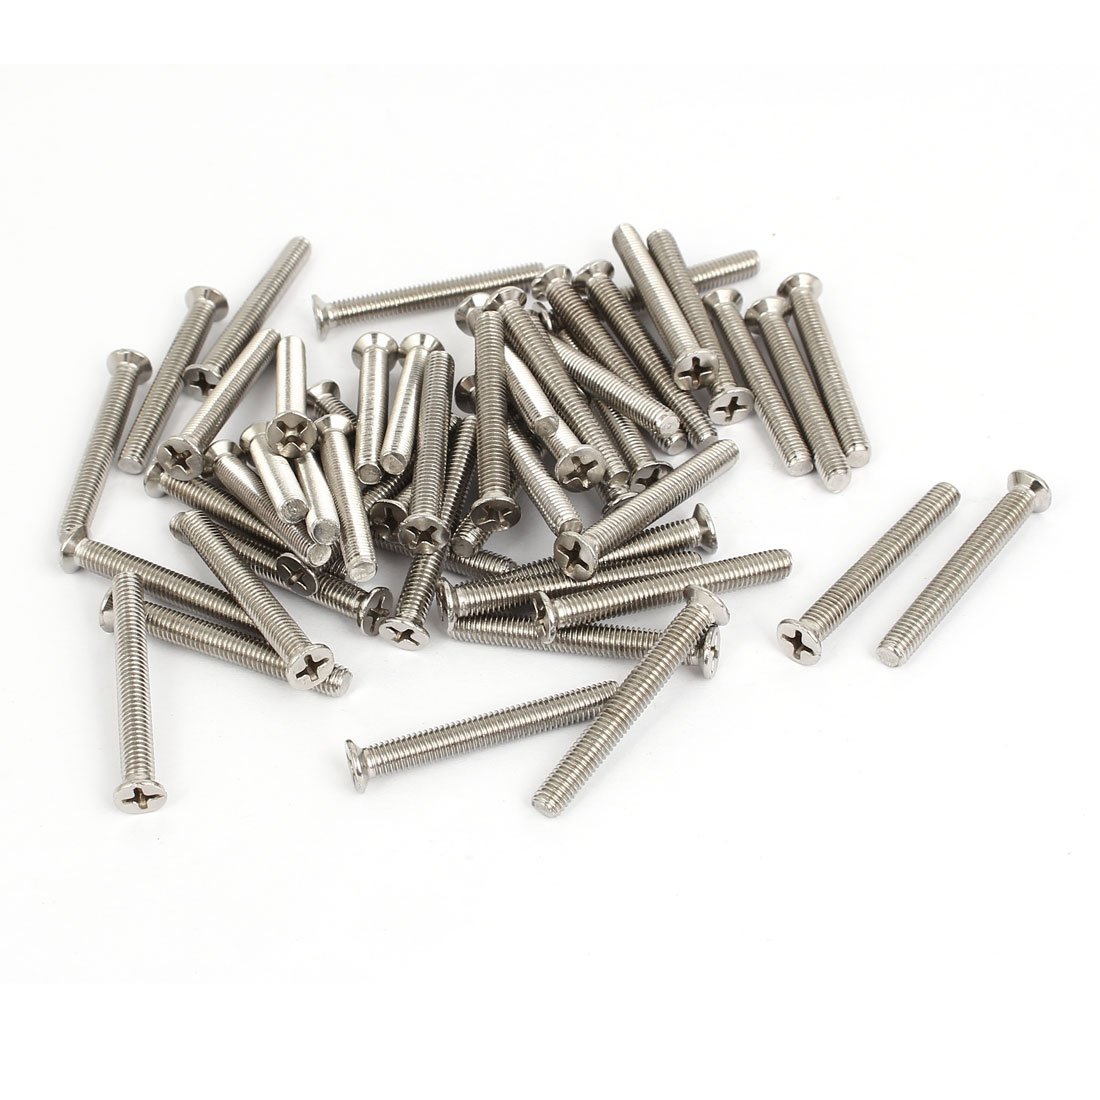 M5x40mm Stainless Steel Countersunk Flat Head Cross Phillips Screw Bolts 50pcs